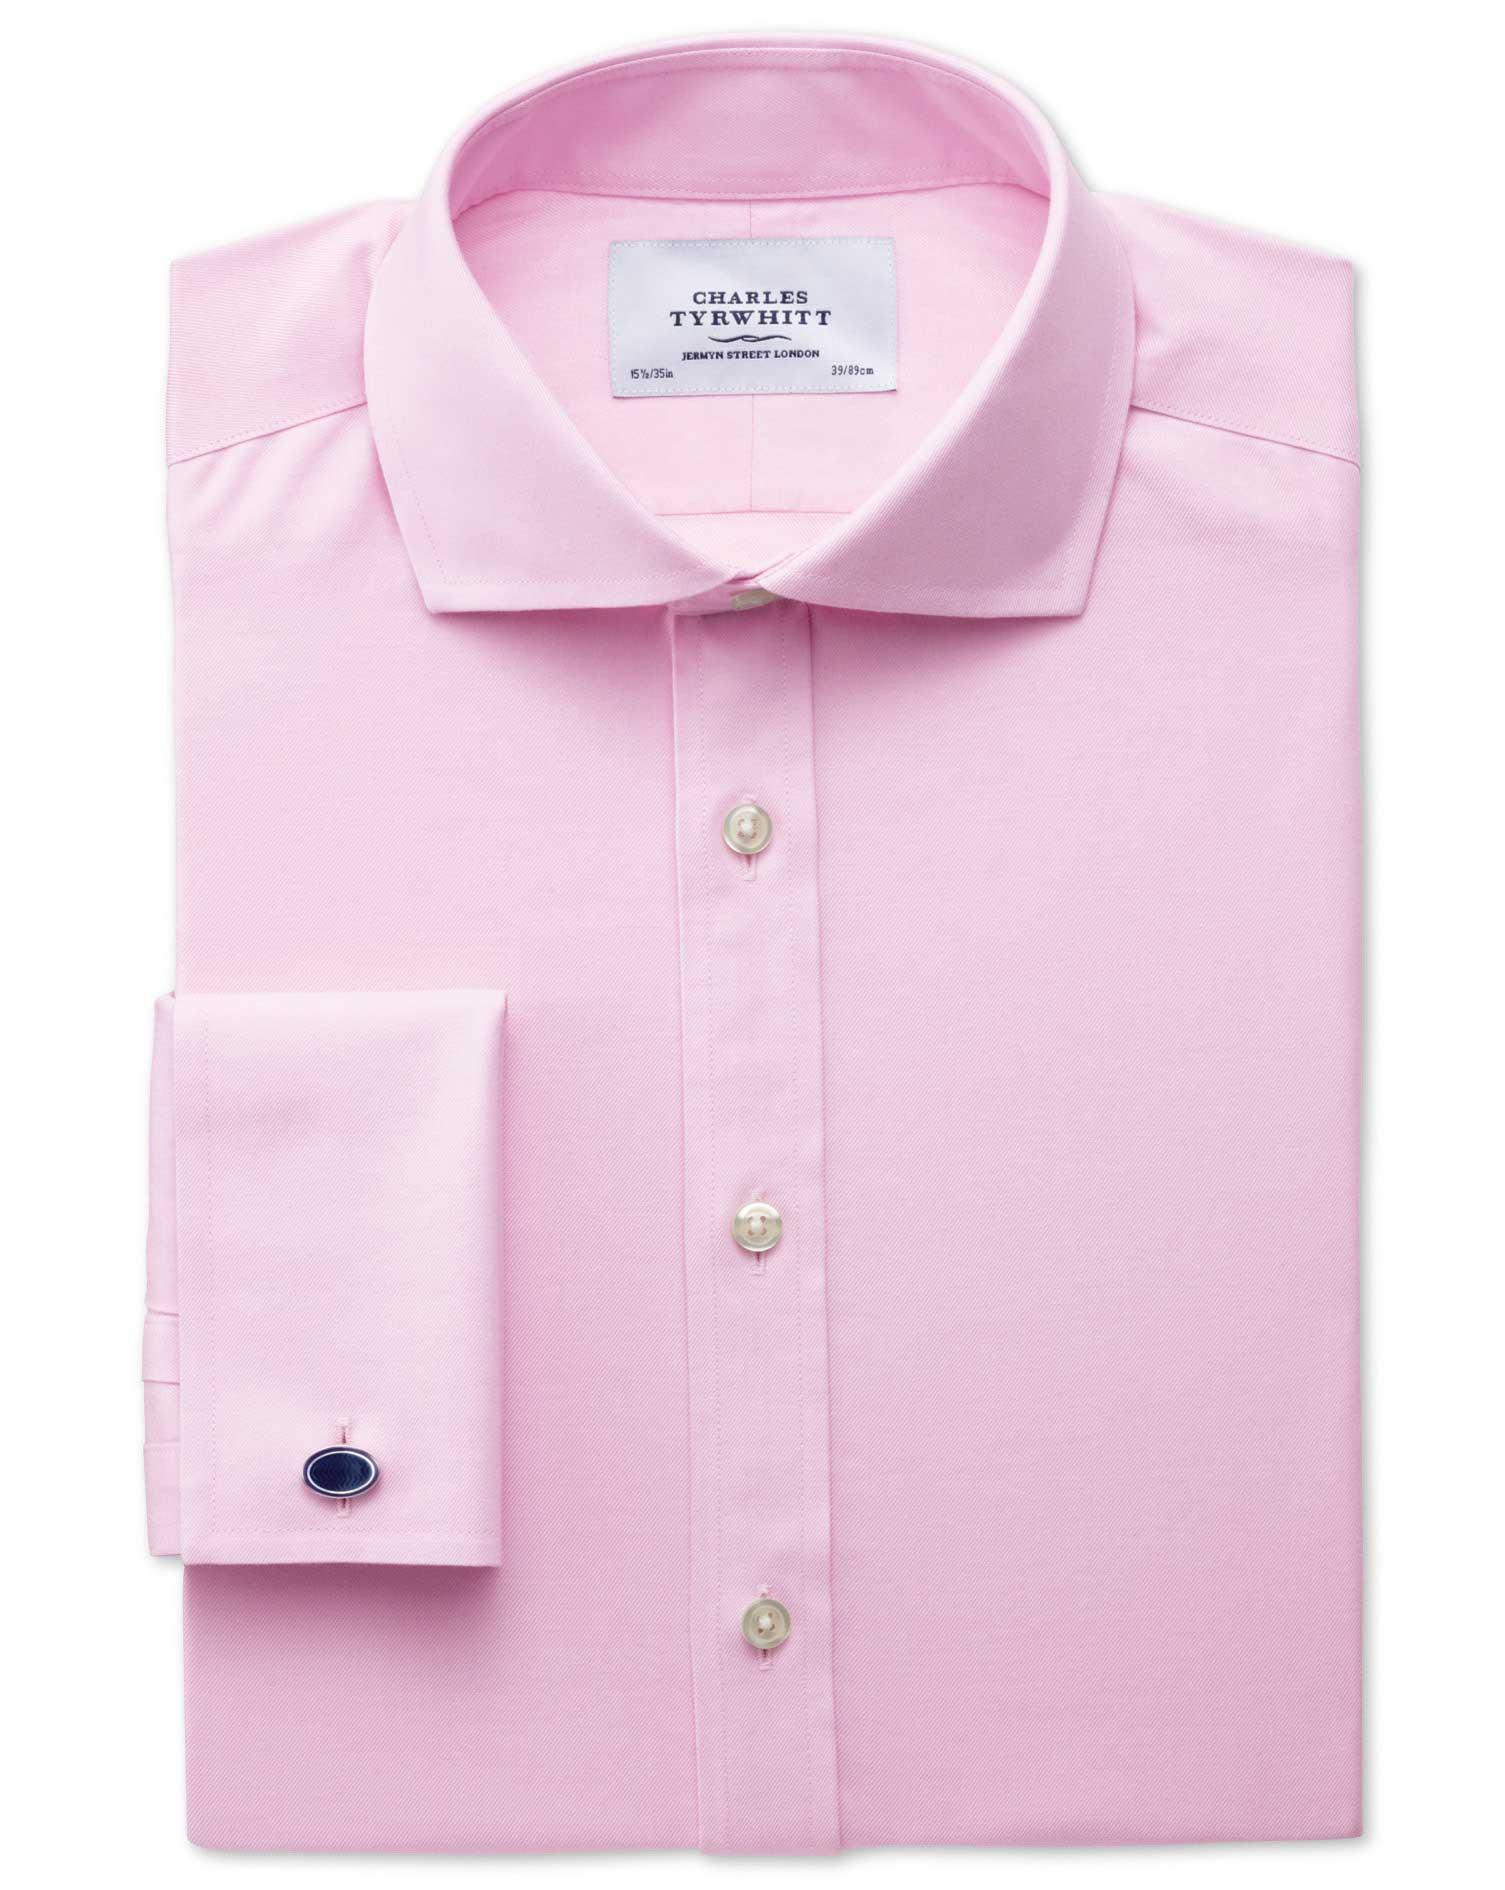 Classic Fit Cutaway Non-Iron Twill Pink Cotton Formal Shirt Double Cuff Size 16/38 by Charles Tyrwhi